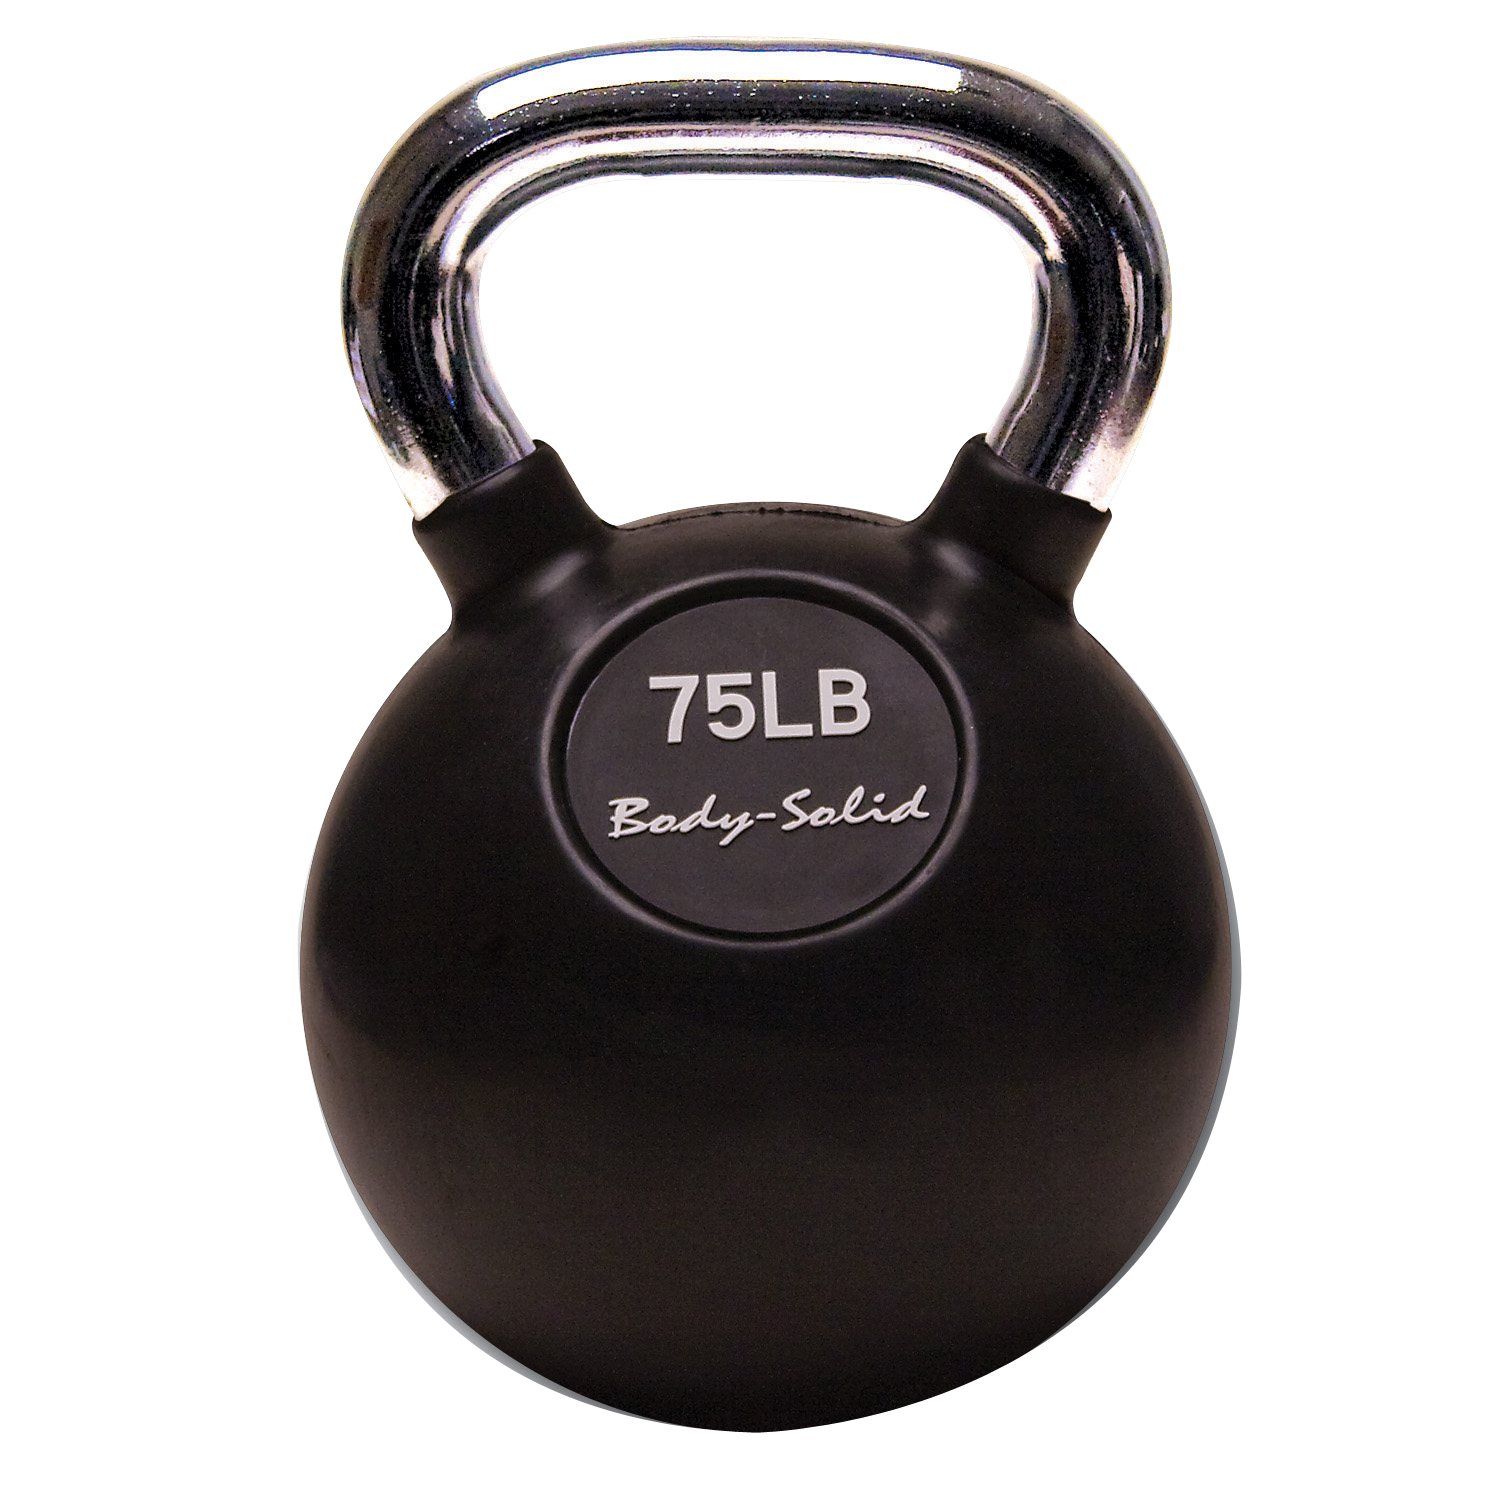 Body-Solid Premium Kettlebells (Sets)